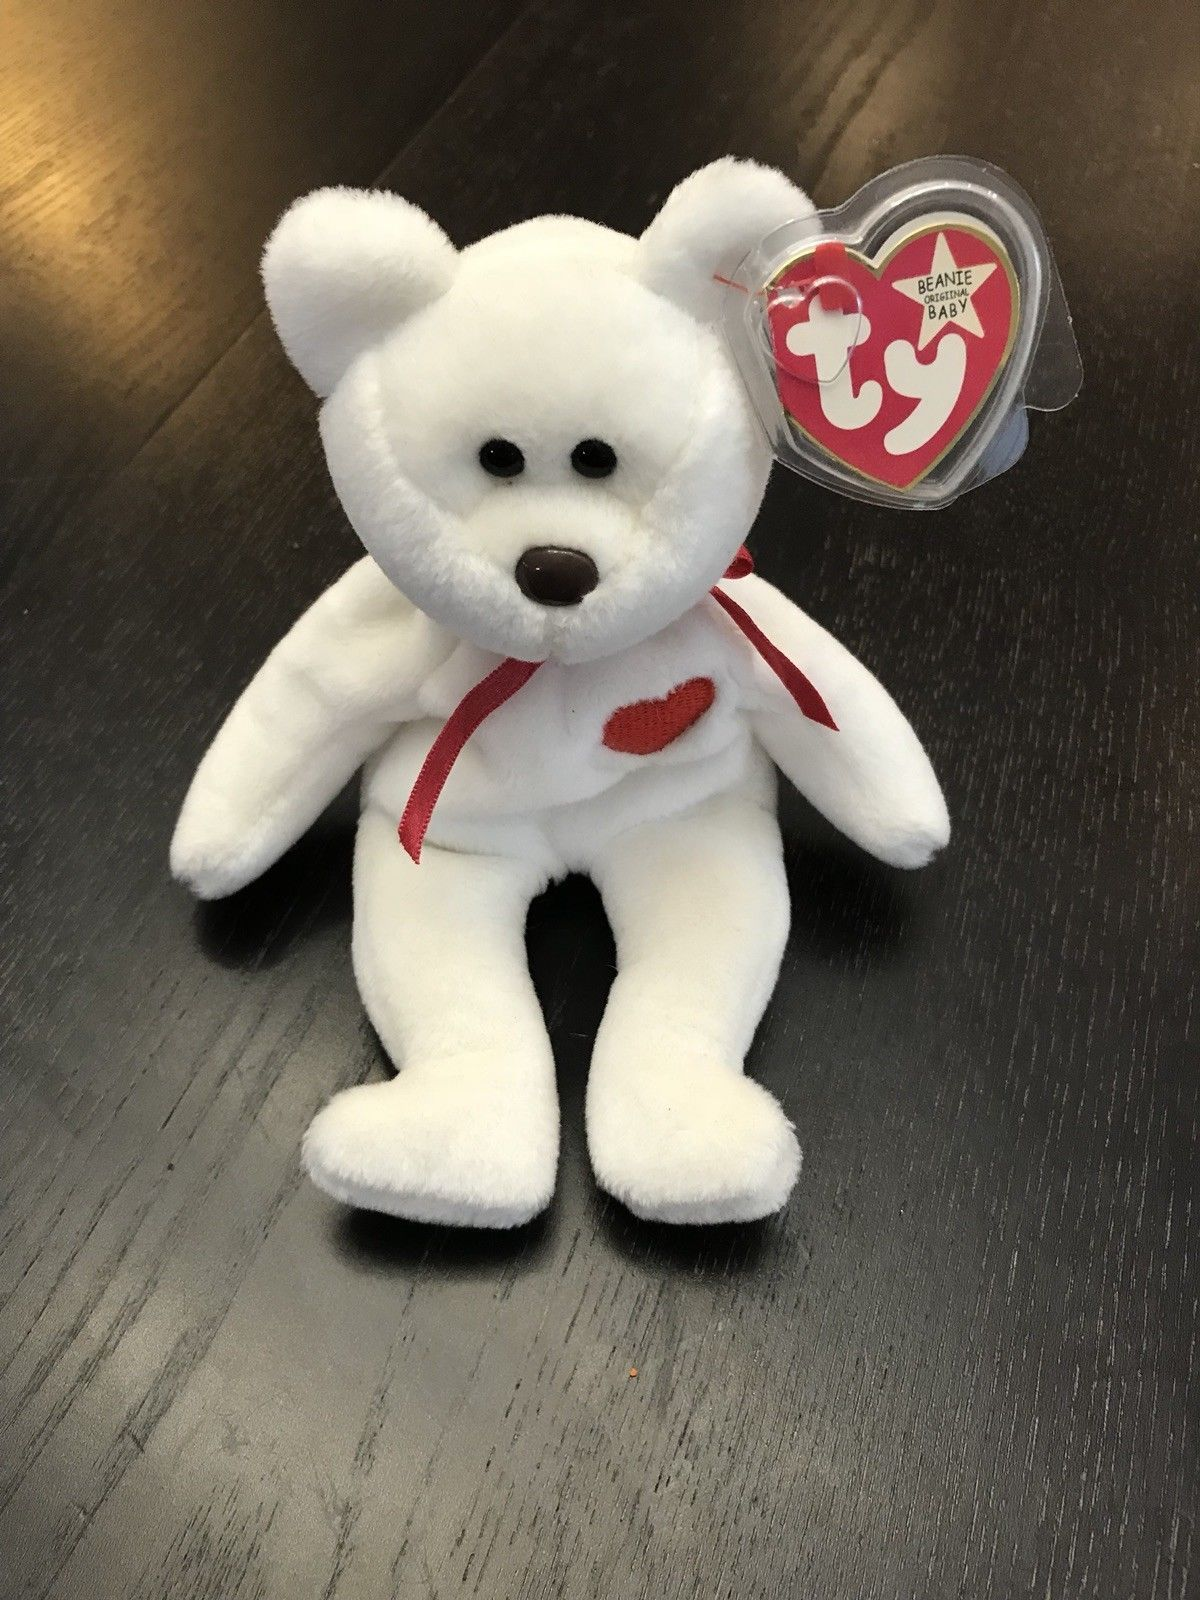 9139757a9c4 The 20 Expensive Collectible Beanie Babies Will Make You Rich - Most  Valuable Beanie Babies